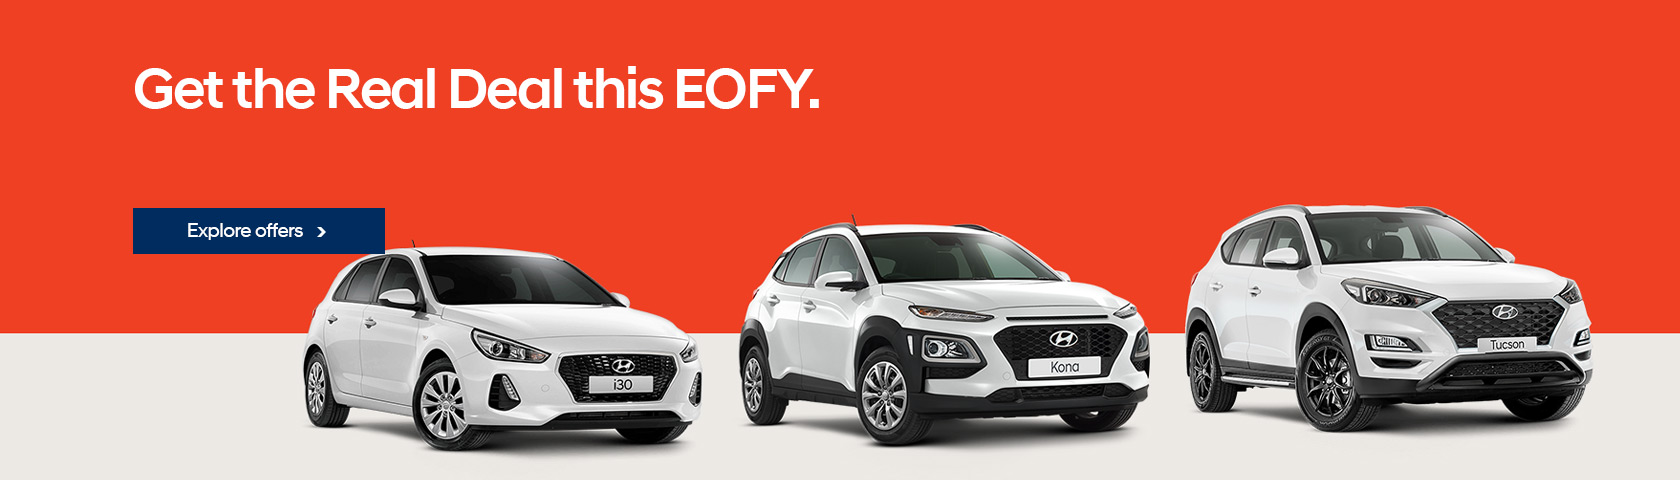 Hyundai Latest Offers